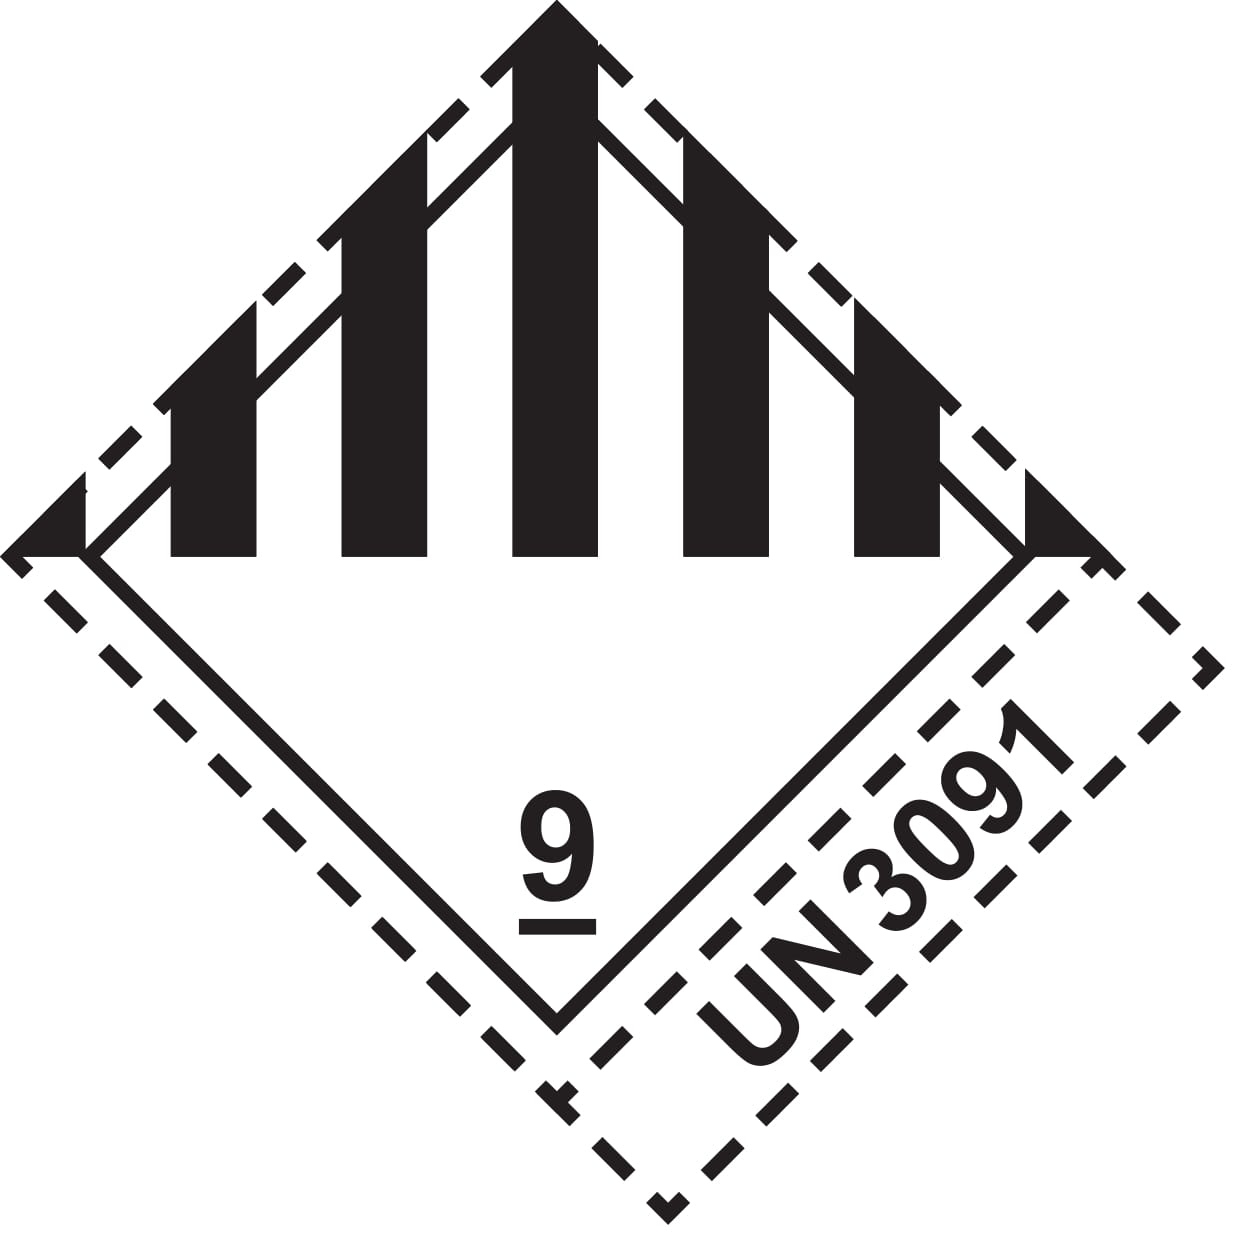 dangerous goods label-kl9-3091